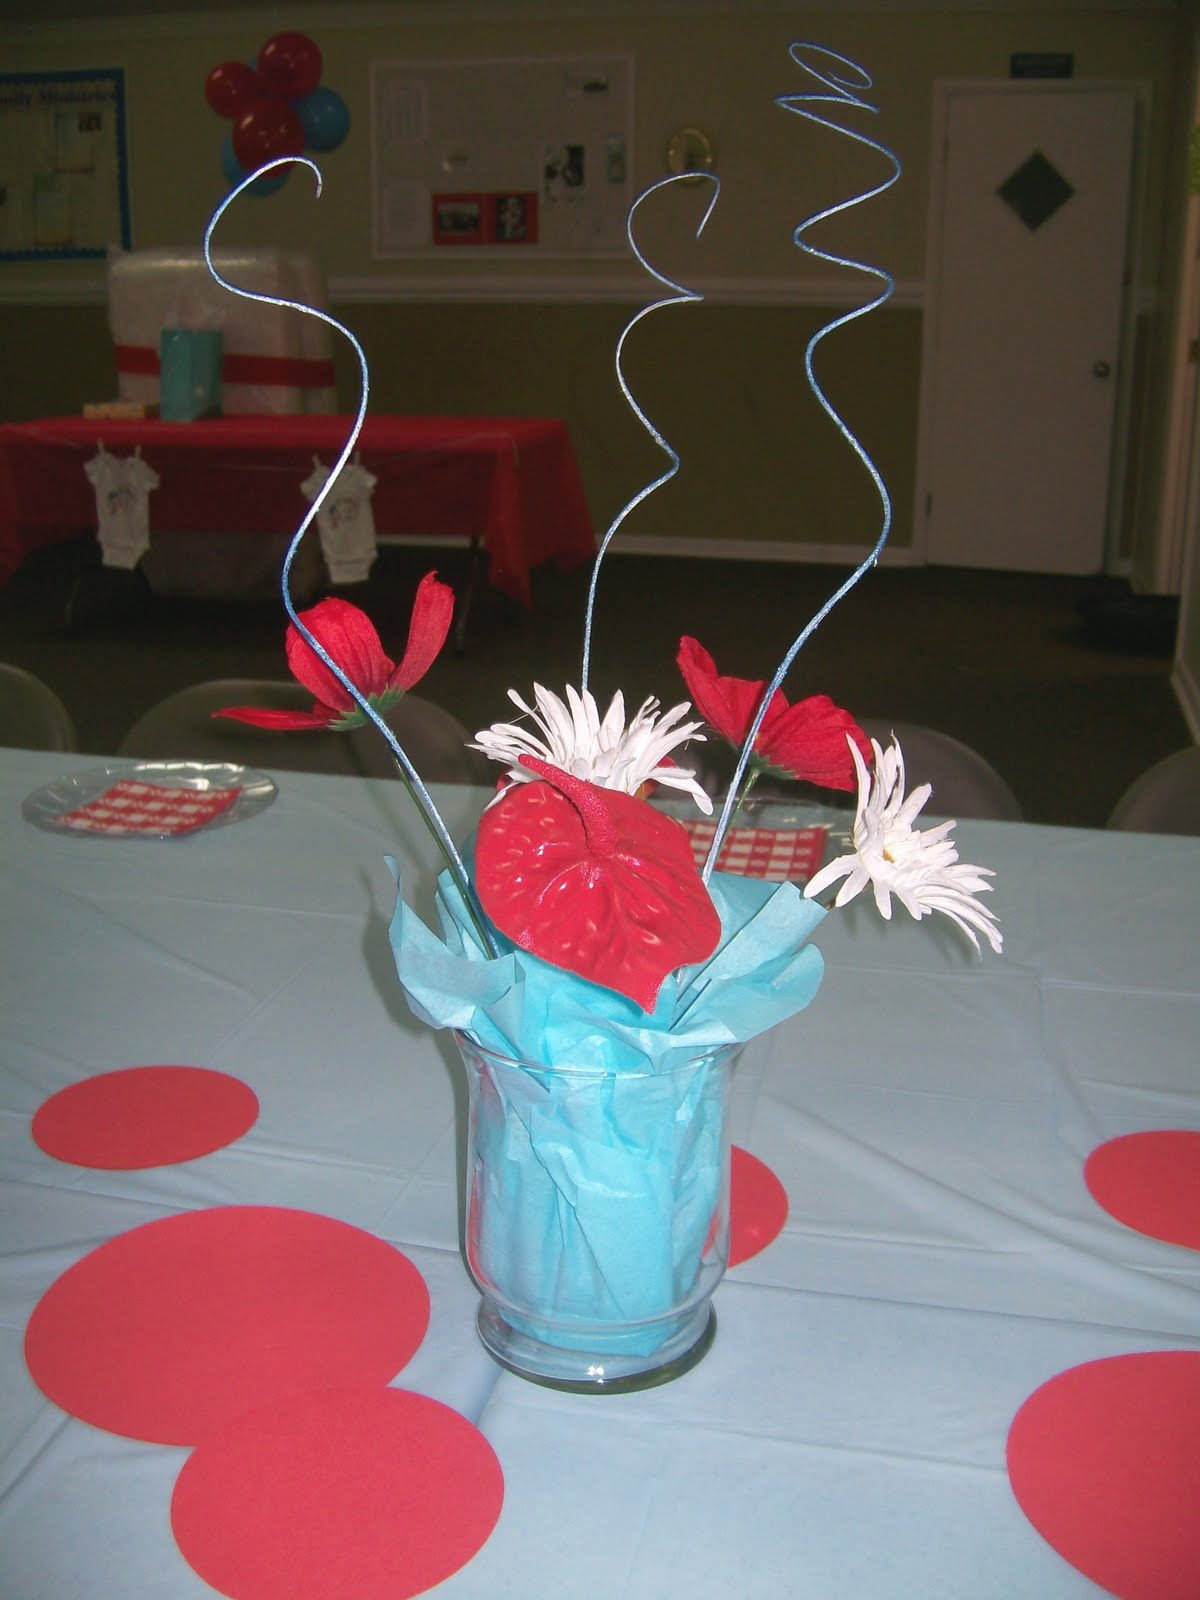 Christina s Creative Side Thing 1 Thing 2 Baby Shower